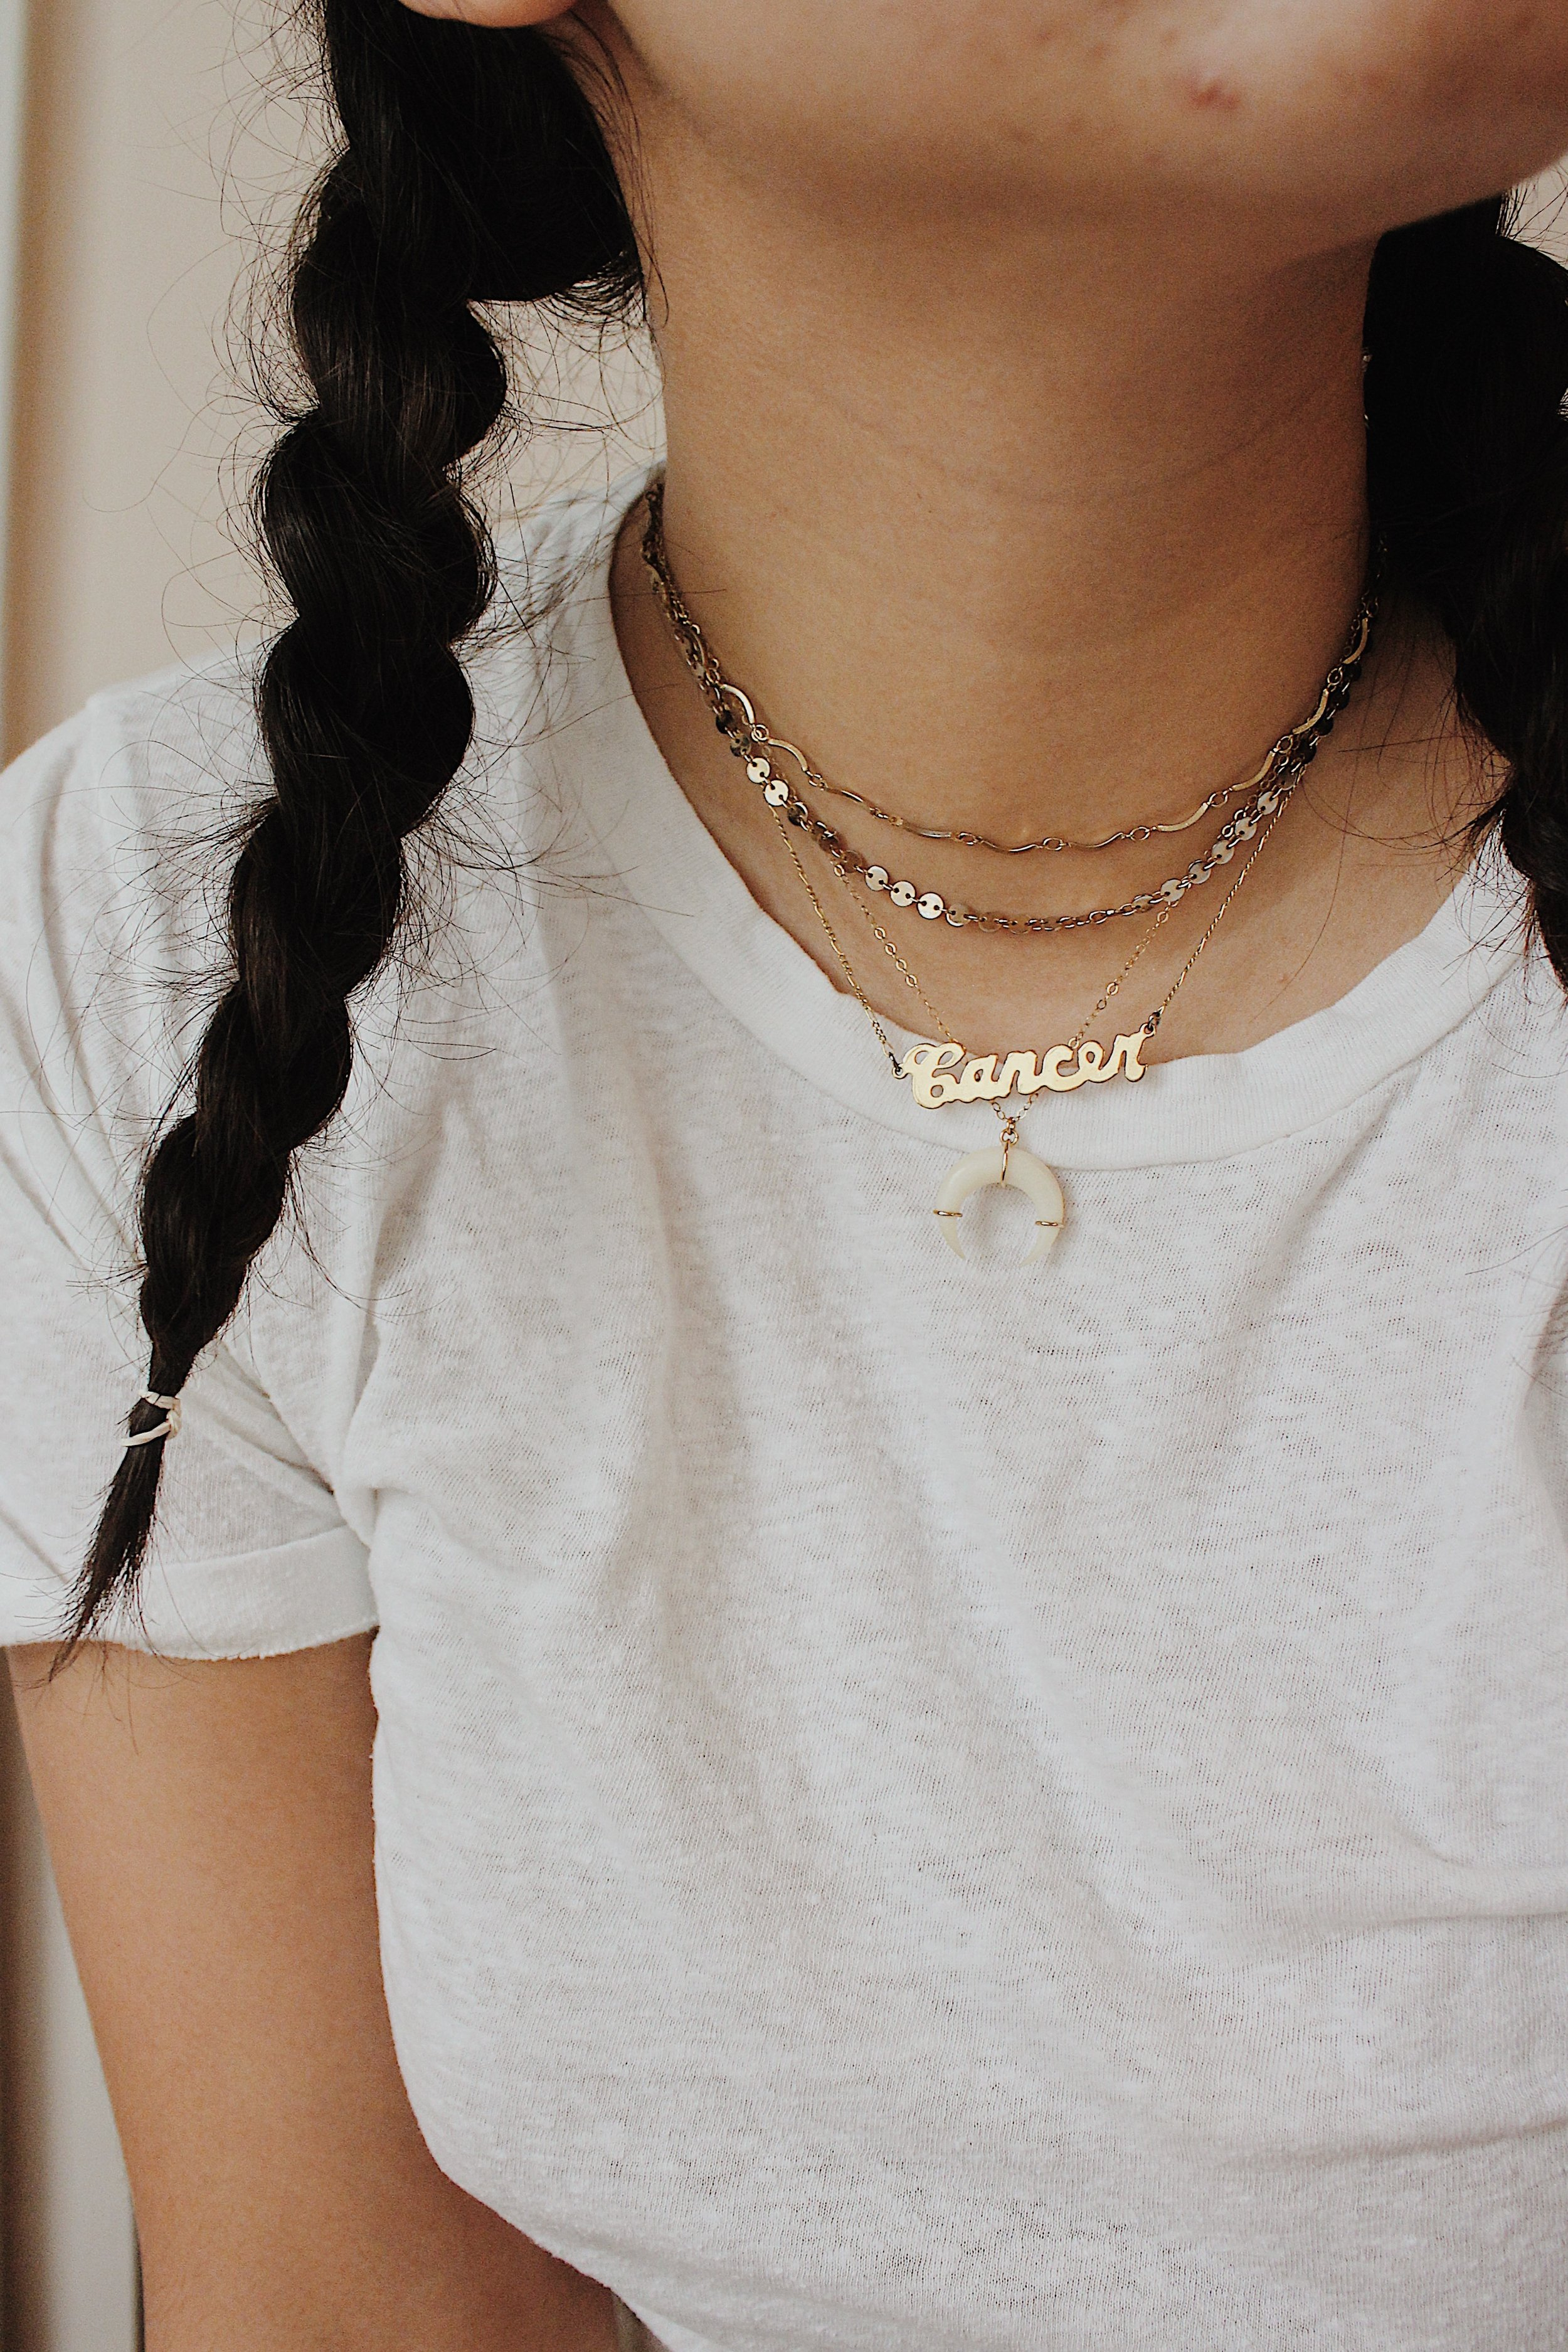 From top to bottom: Brooklyn Bleu  Vintage Choker  (unavailable but similar option  here ) // Oceanne  Dot Choker  // Brooklyn Charm  Astrological Sign Necklace  // Lili Claspe  Horn Necklace